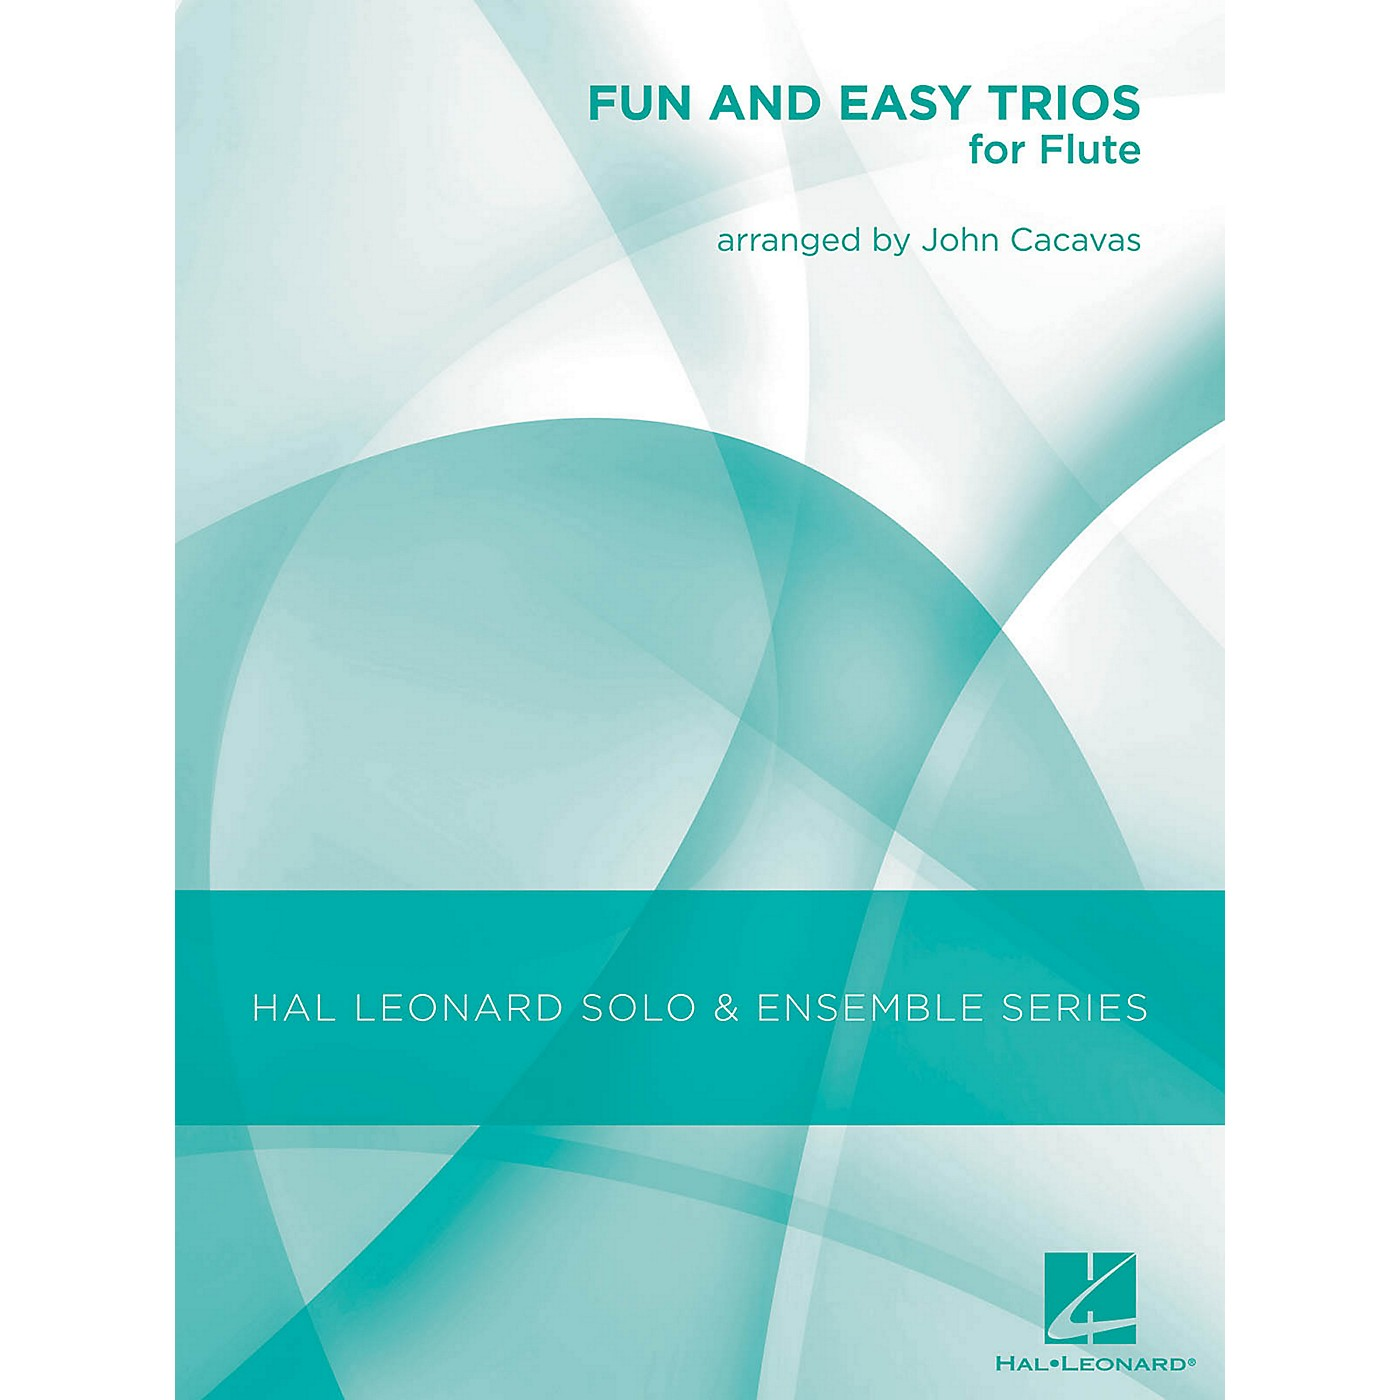 Hal Leonard Fun & Easy Trios for Flute - Hal Leonard Solo & Ensemble Series Arranged By John Cacavas thumbnail